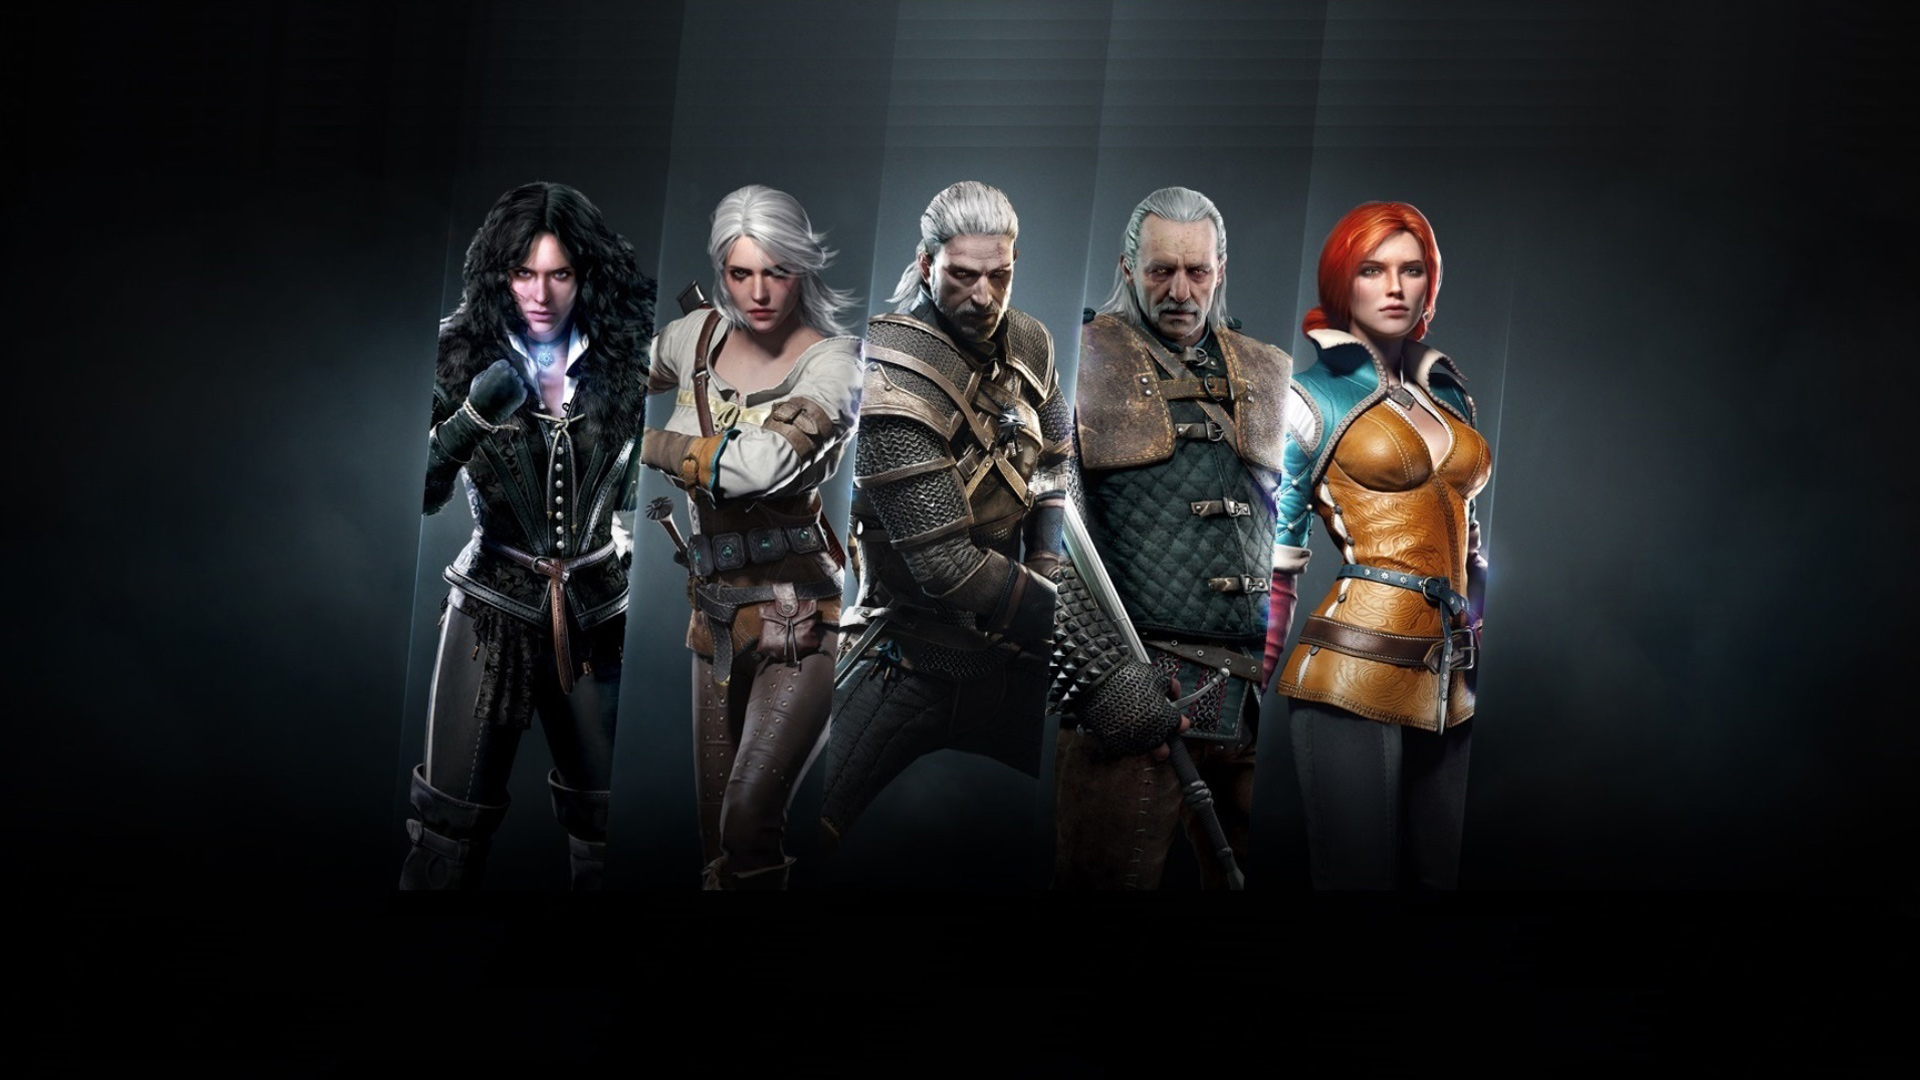 Free Download Download Witcher 3 Hd Wallpapers Techjeep 1920x1080